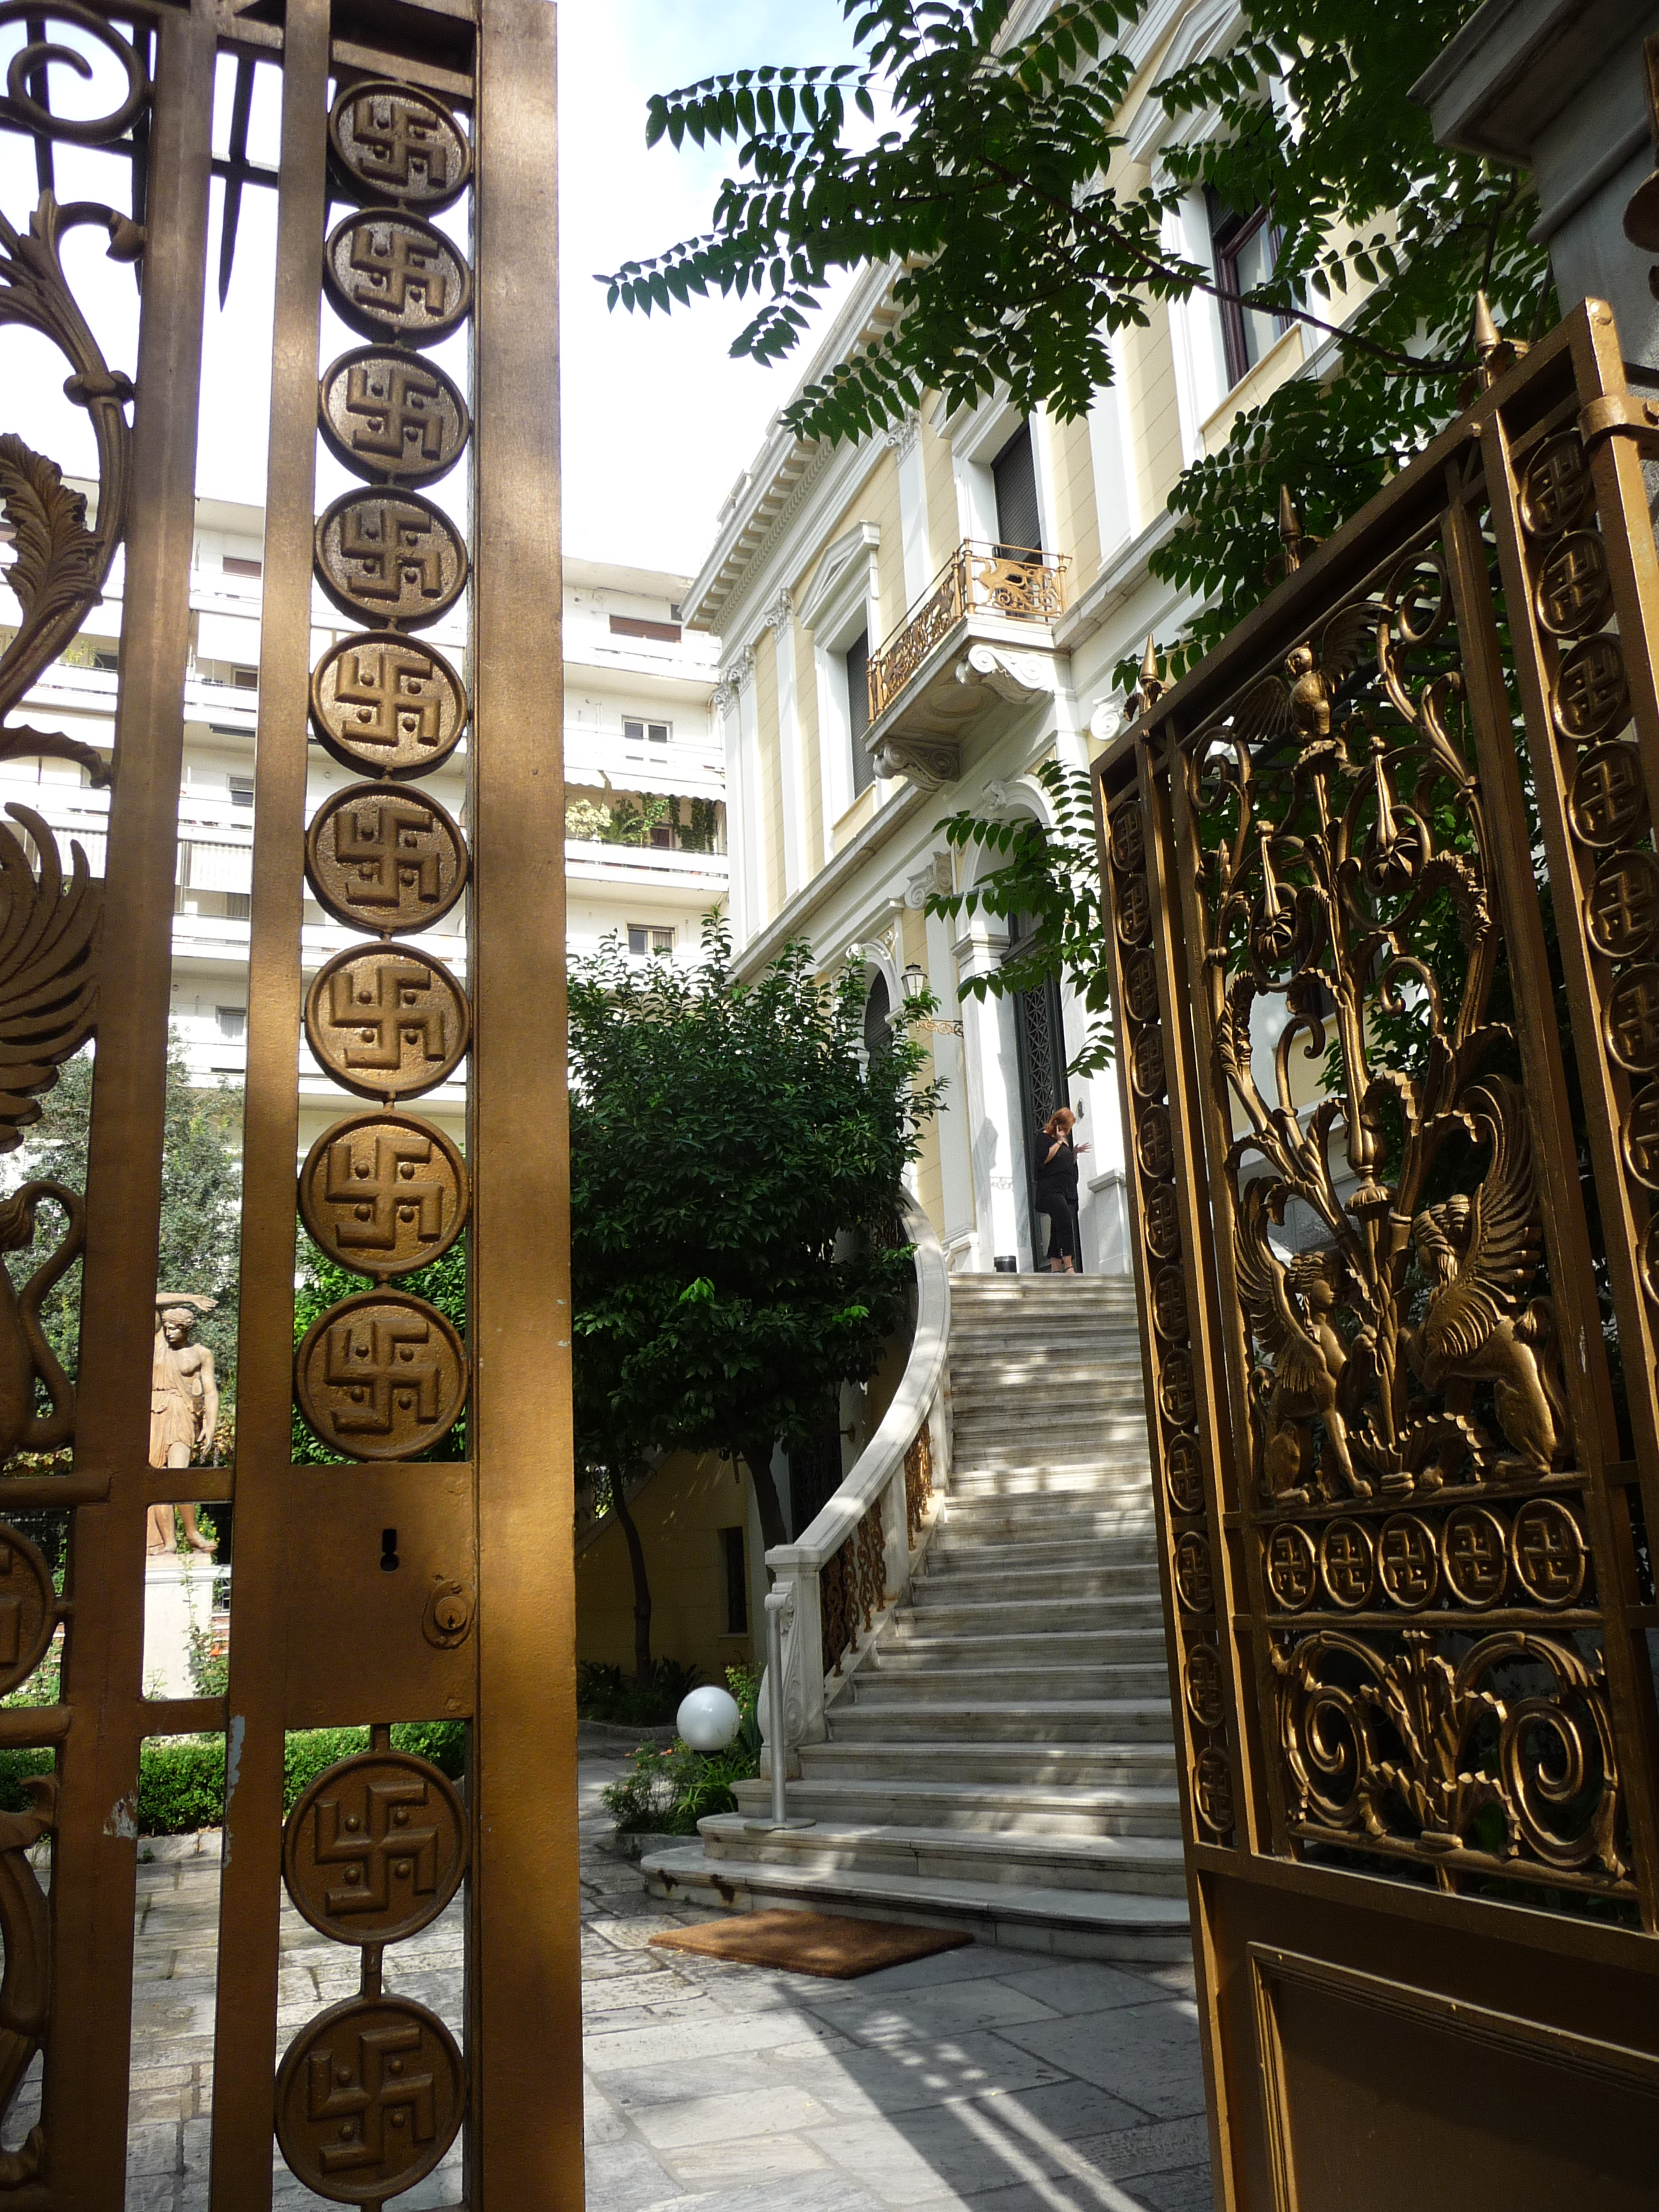 Numismatic Museum Free Guided Tour